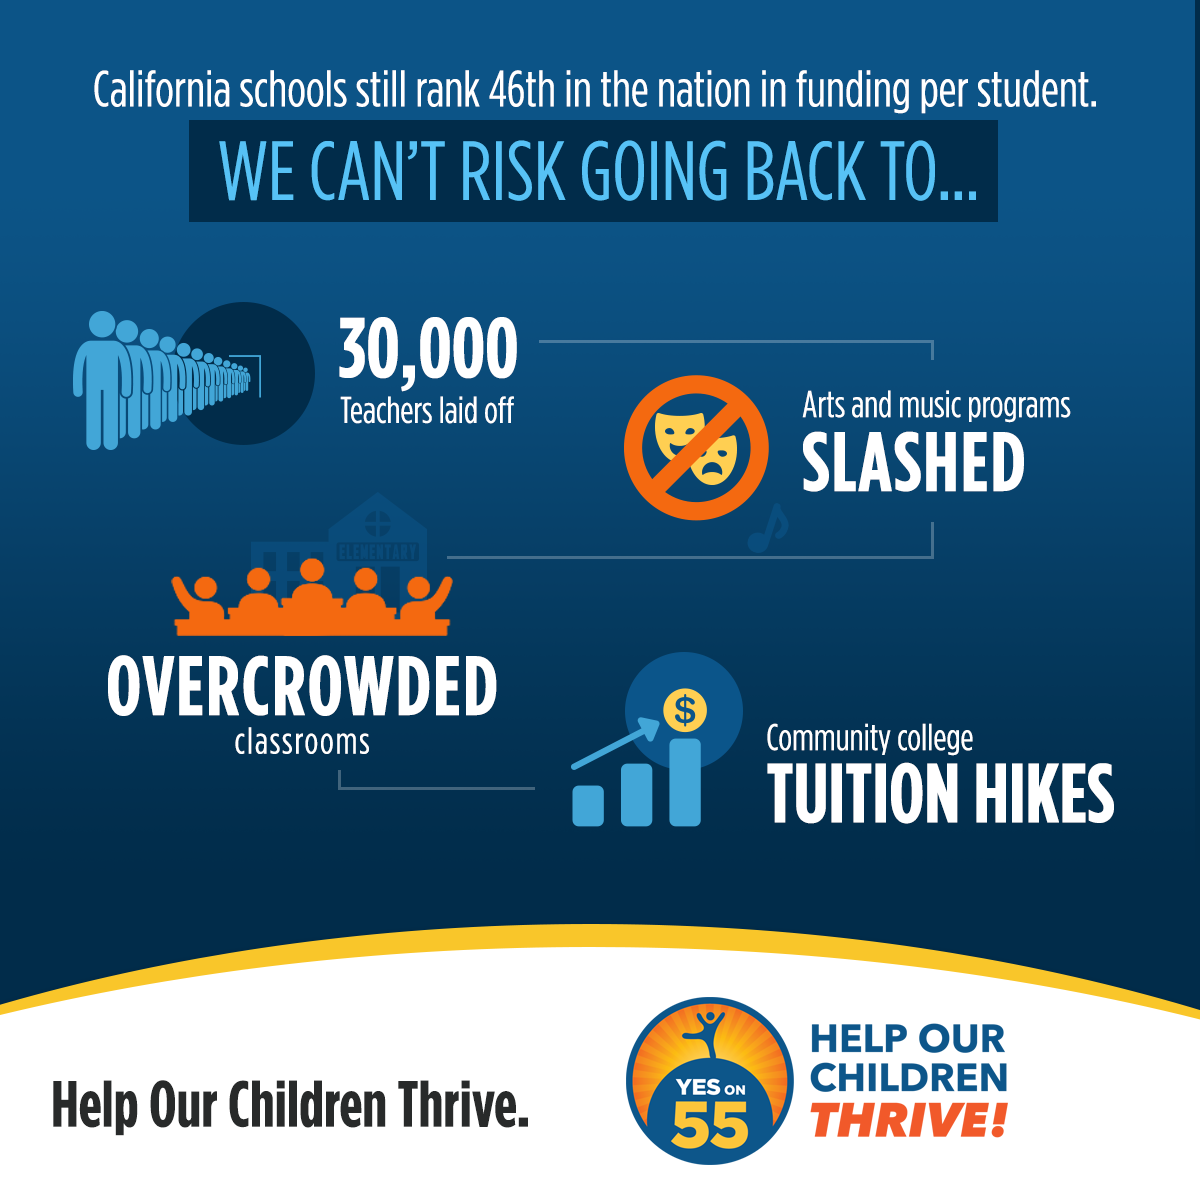 An infographic supporting Proposition 55